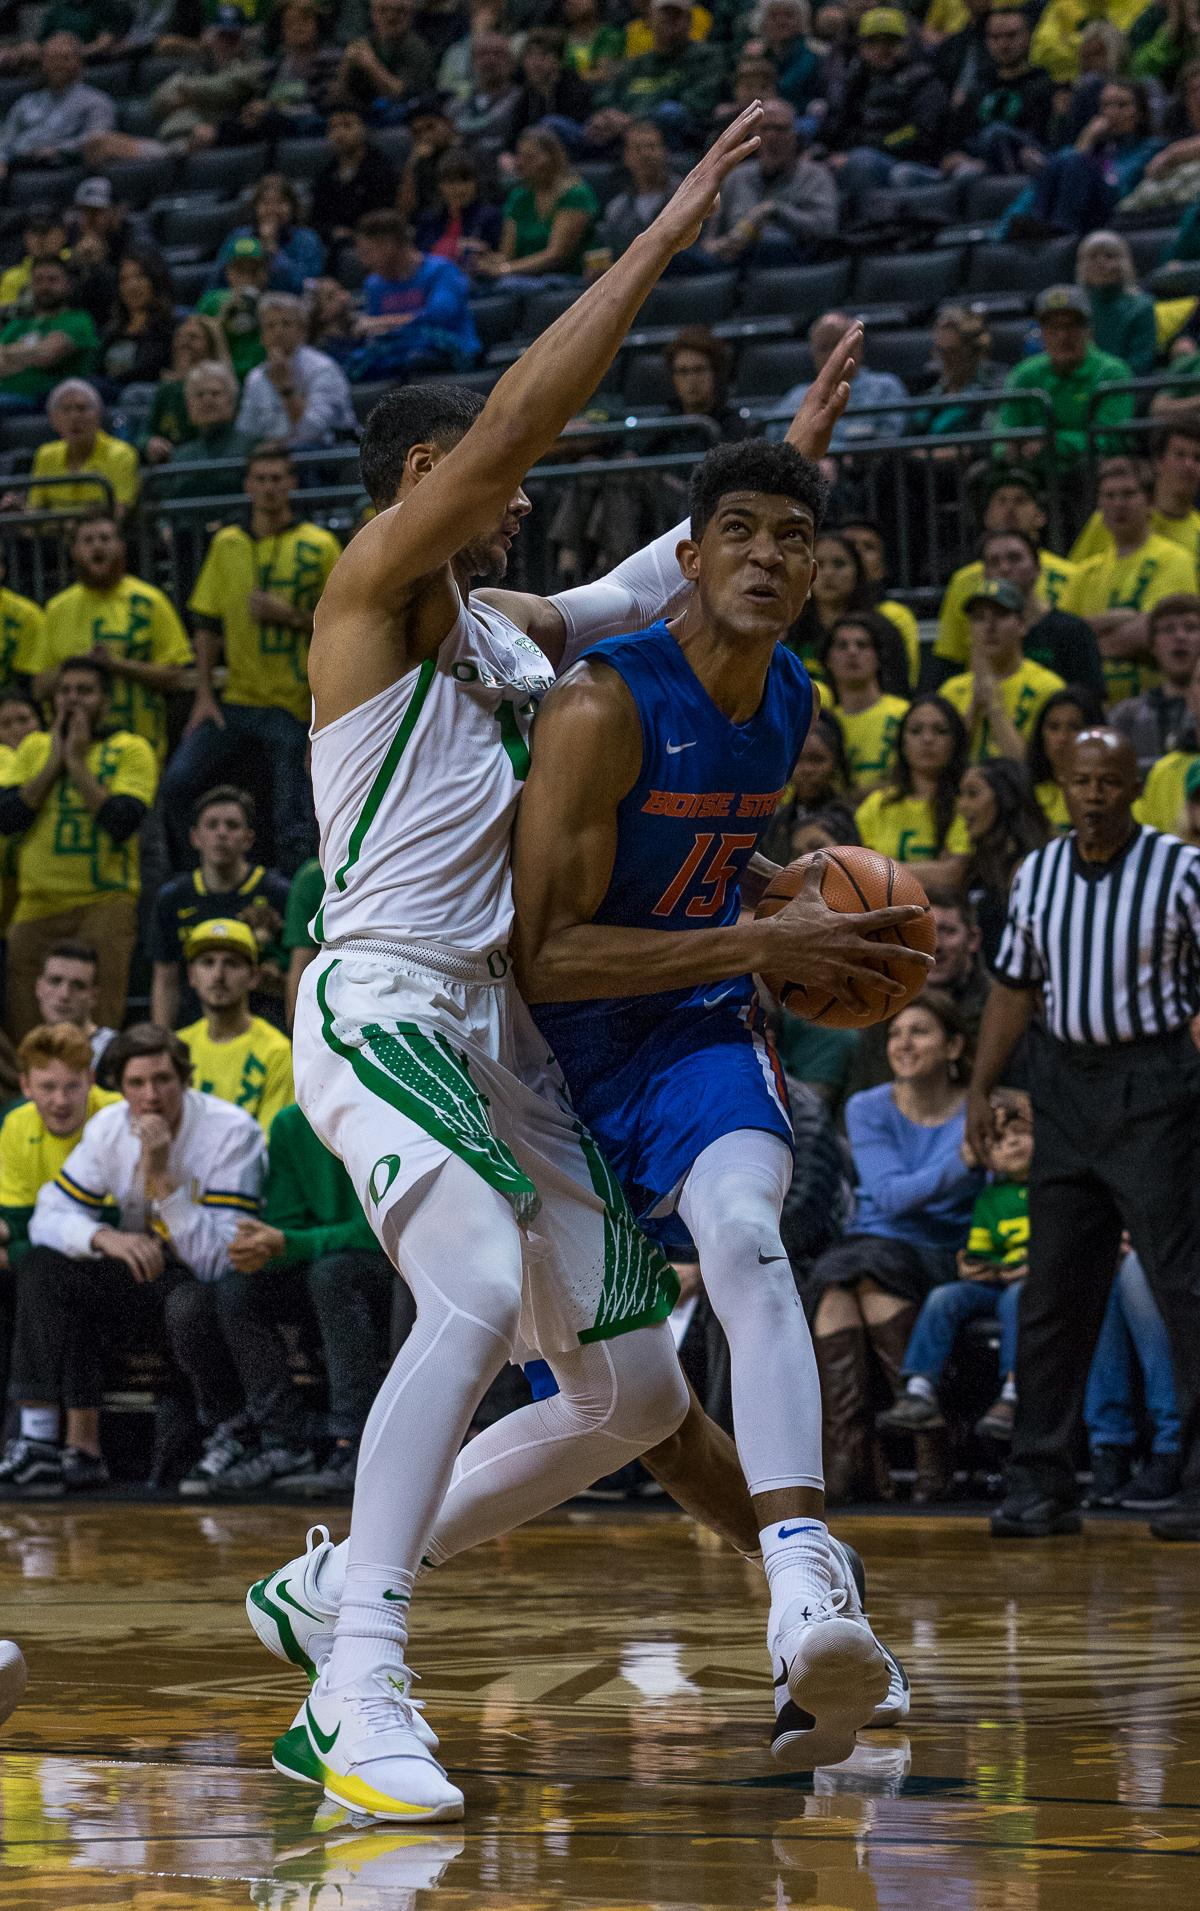 Boise State Bronco Chandler Hutchison (#15) rushes past Oregon Duck Keith Smith (#11). The Boise State Broncos defeated the University of Oregon Ducks 73 – 70 at Matthew Knight Arena in Eugene, Ore., on December 1, 2017. Photo by Kit MacAvoy, Oregon News Lab